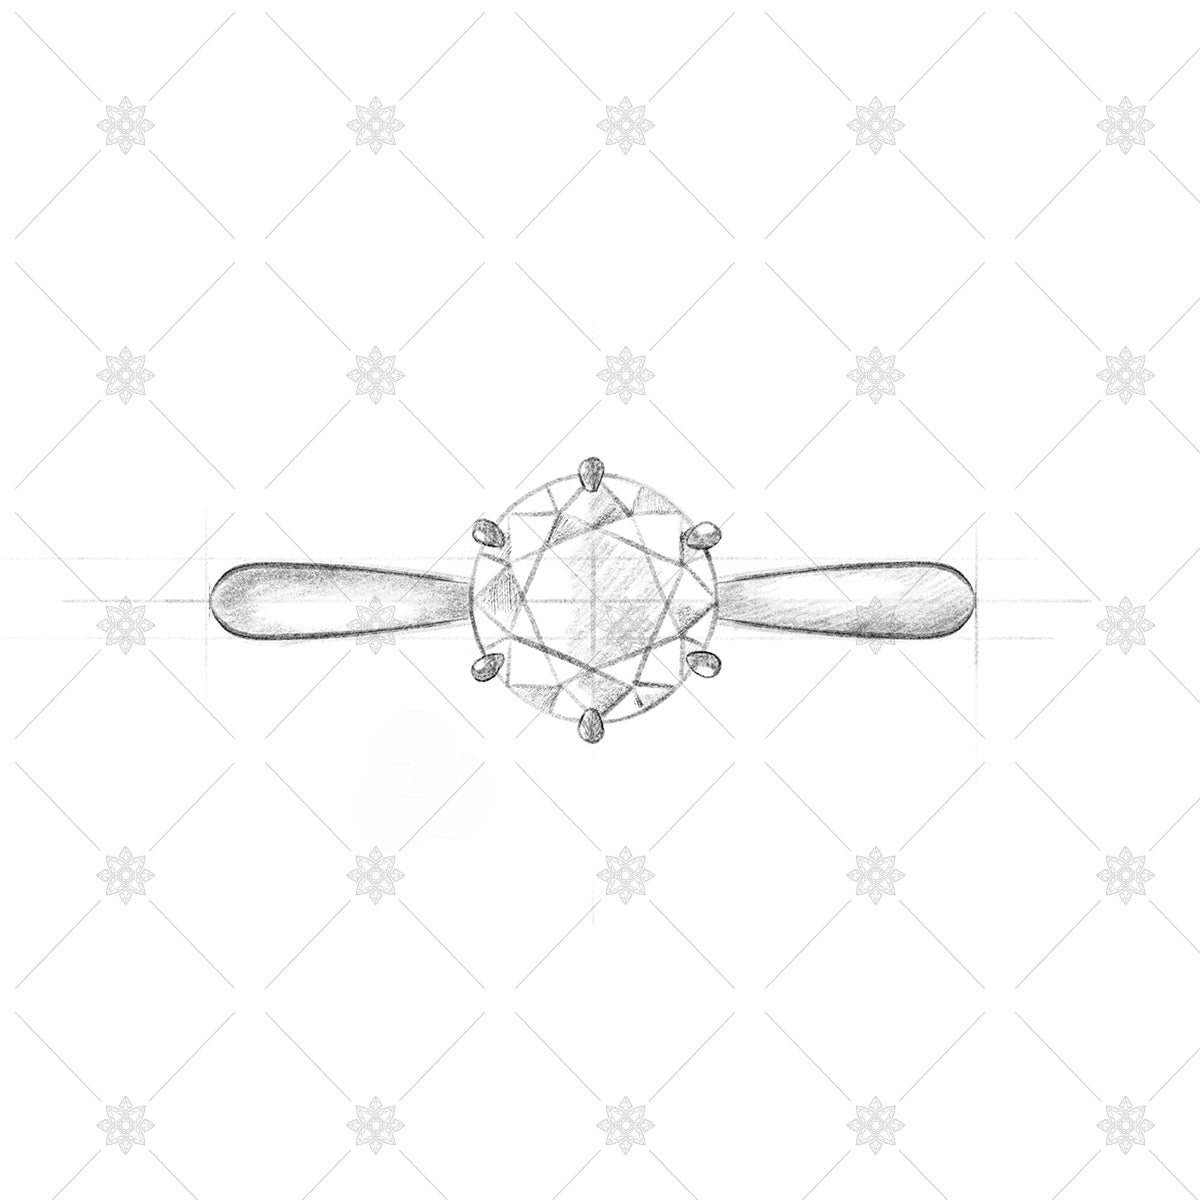 Diamond ring sketch - drawing of a diamond ring